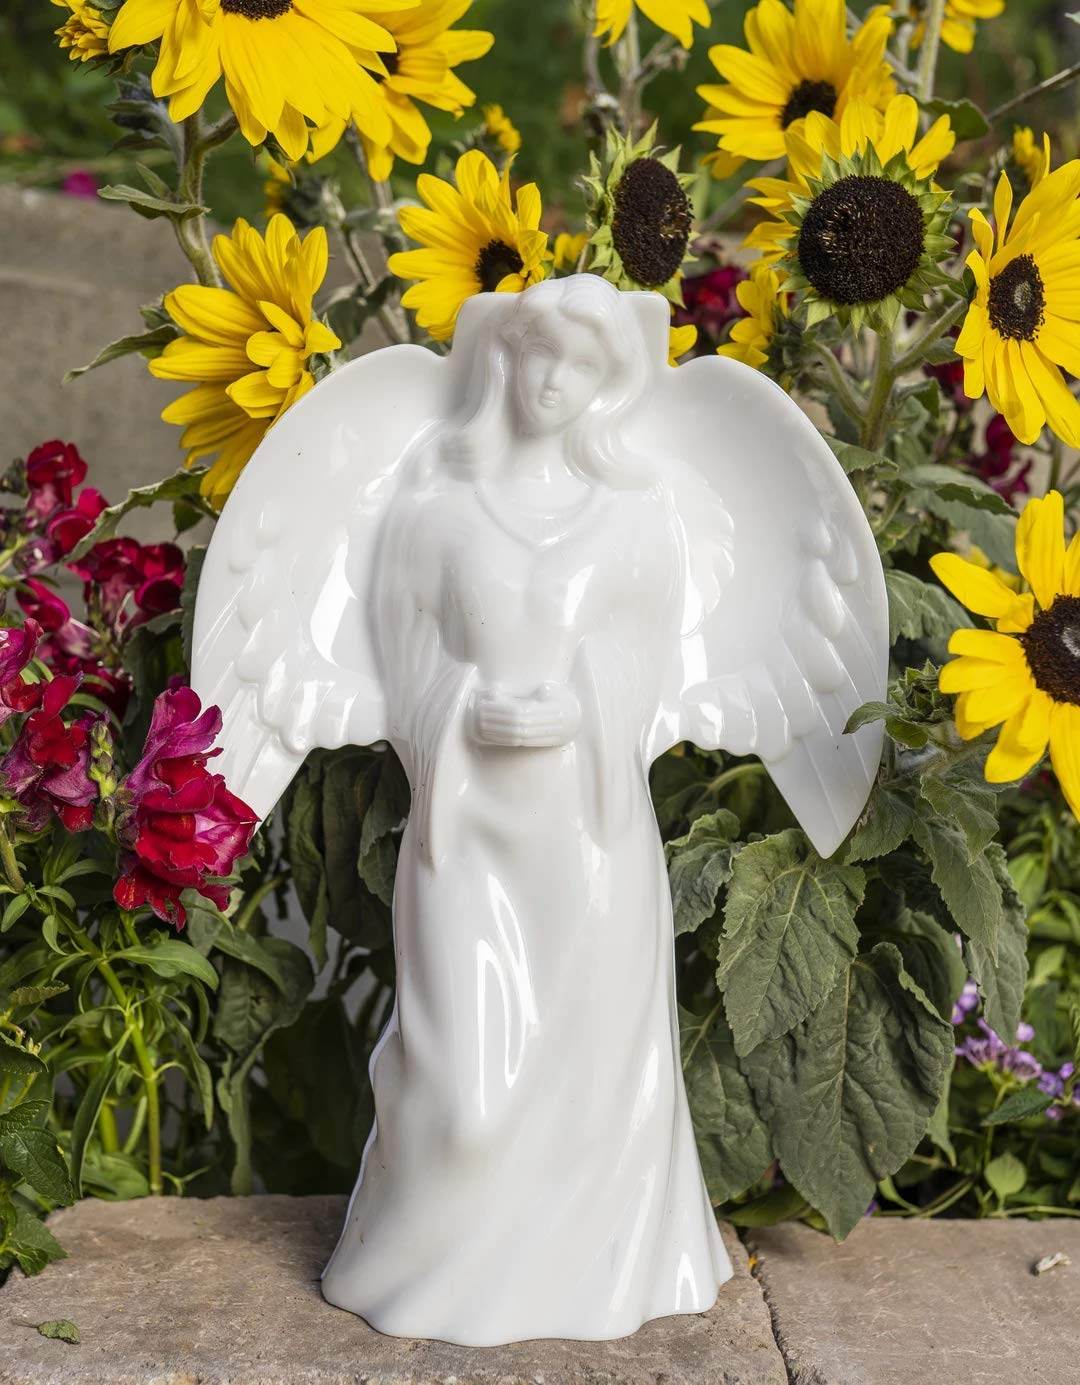 Solar Lighted Angel by Eternal Light | Solar Grave Decoration Heartfelt Cemetery Memorial 14'' x 10'' by Eternal Light Cross